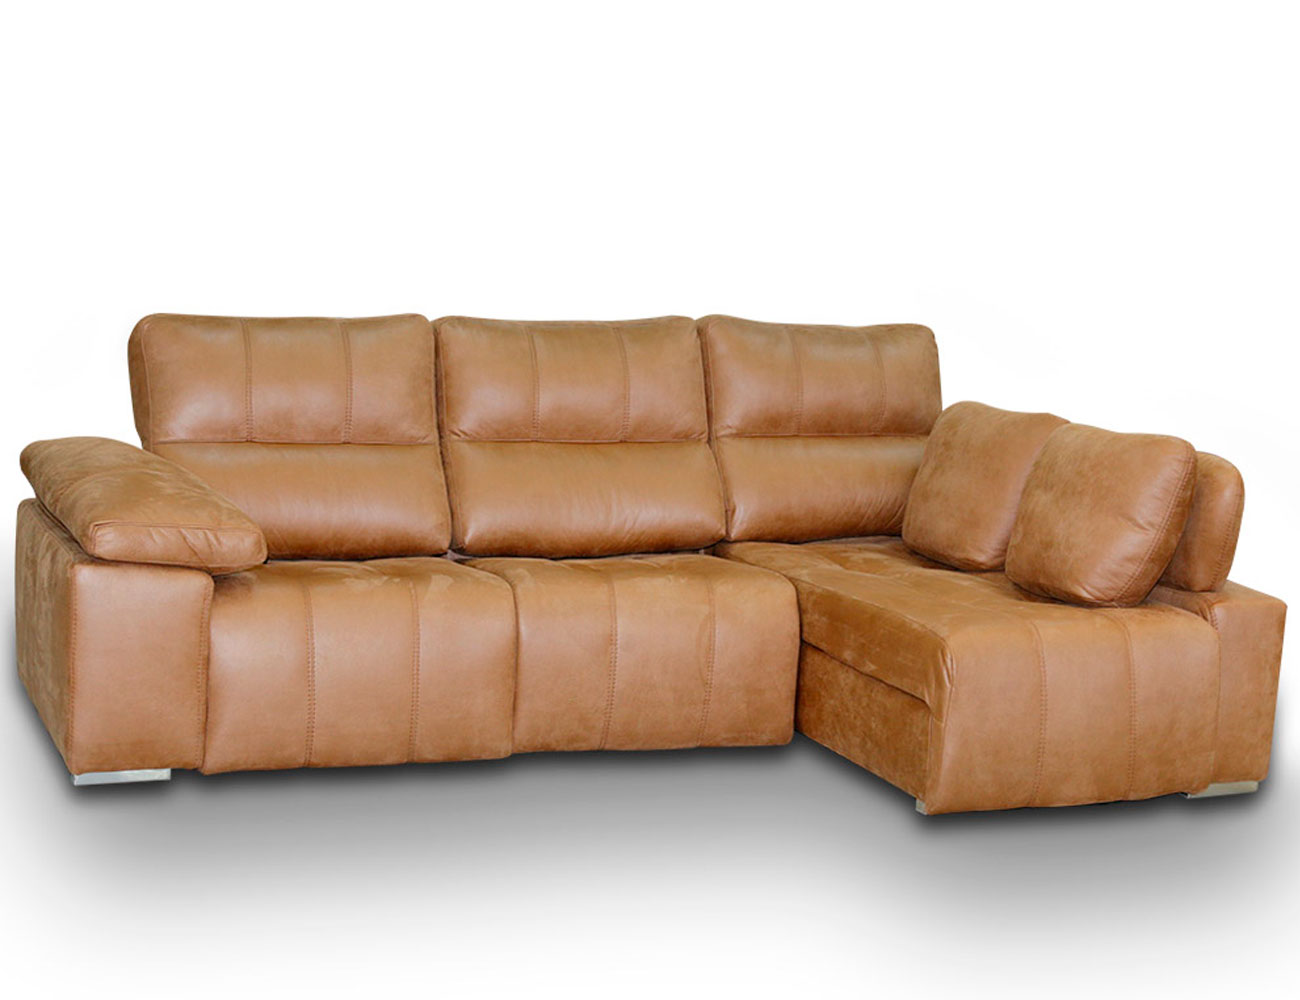 Sofa chaiselongue relax 2 motores anti manchas46